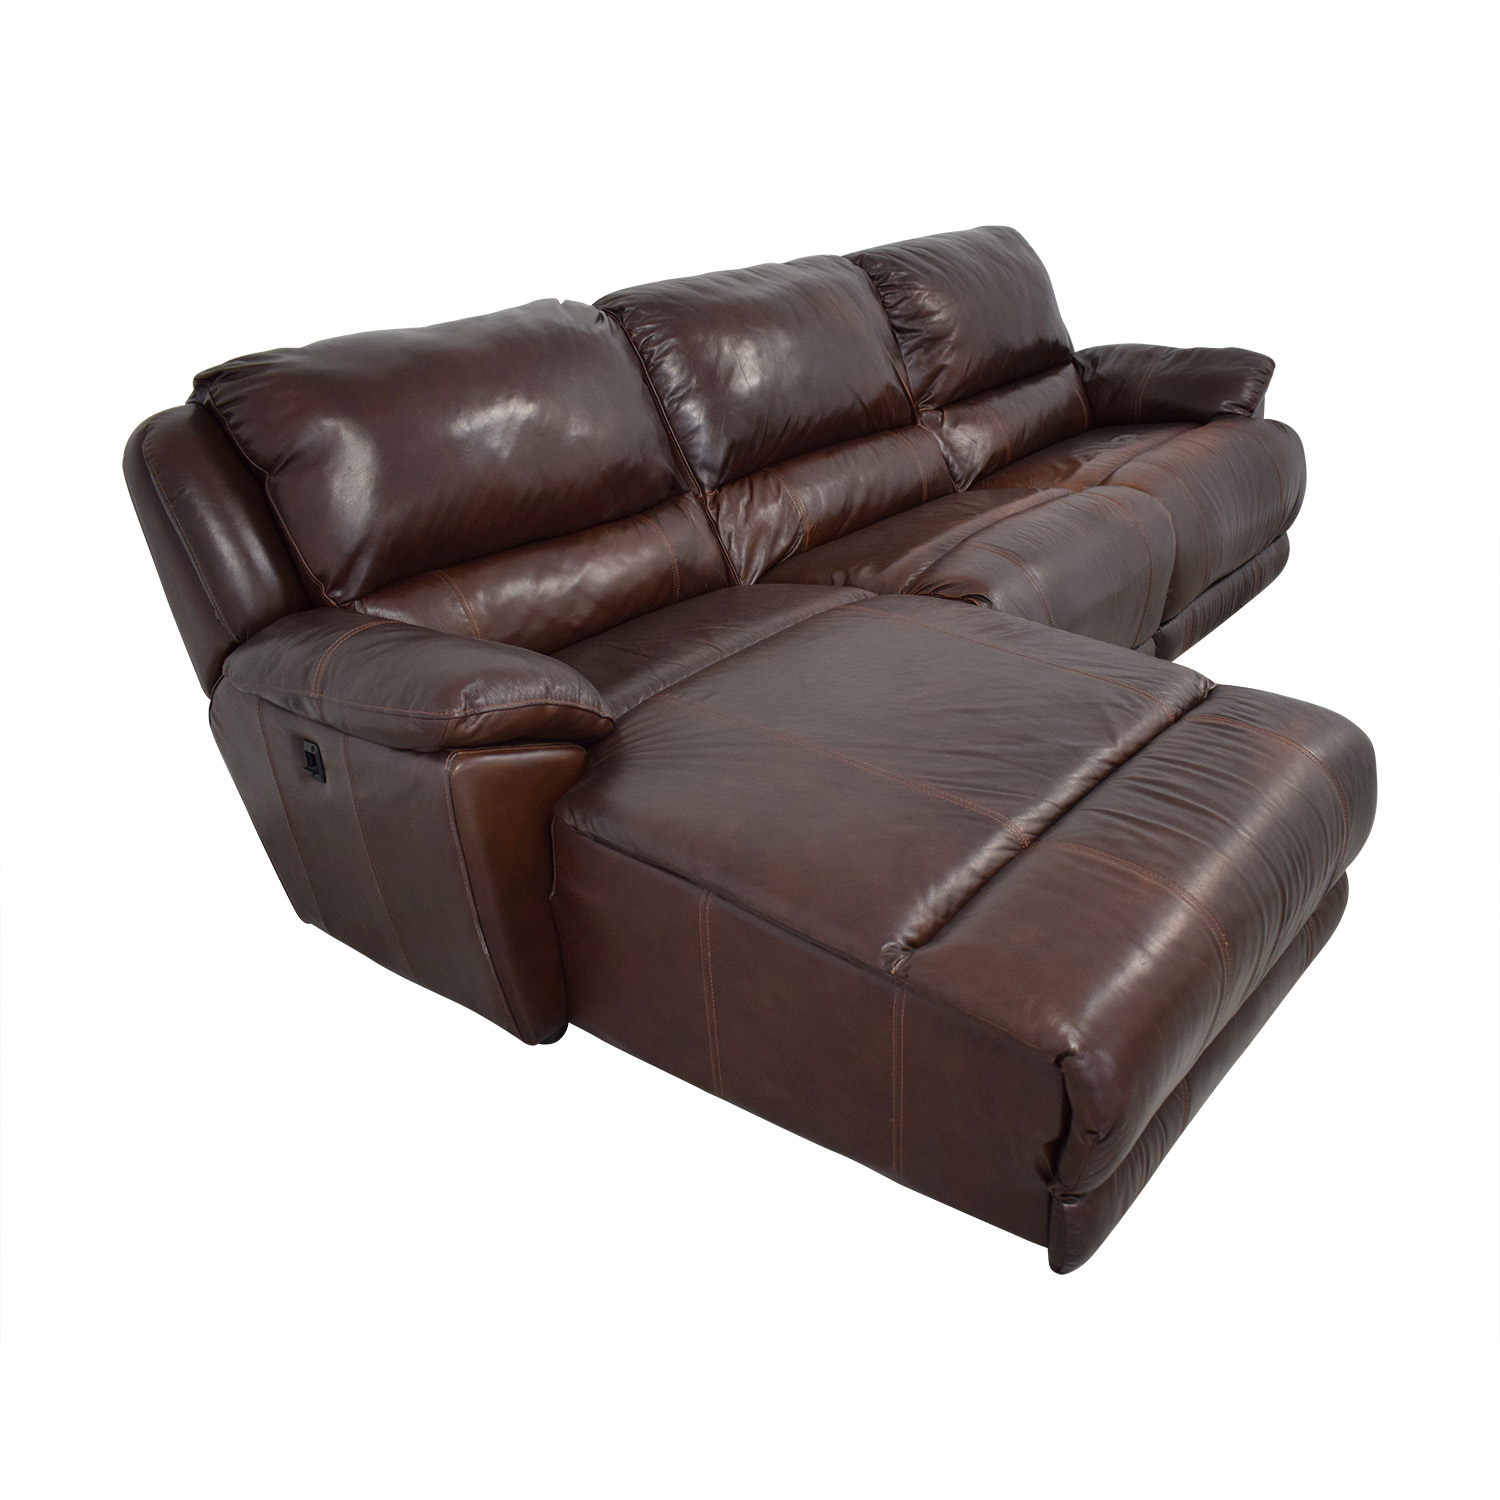 shop Macy's Macy's Leather Sectional online